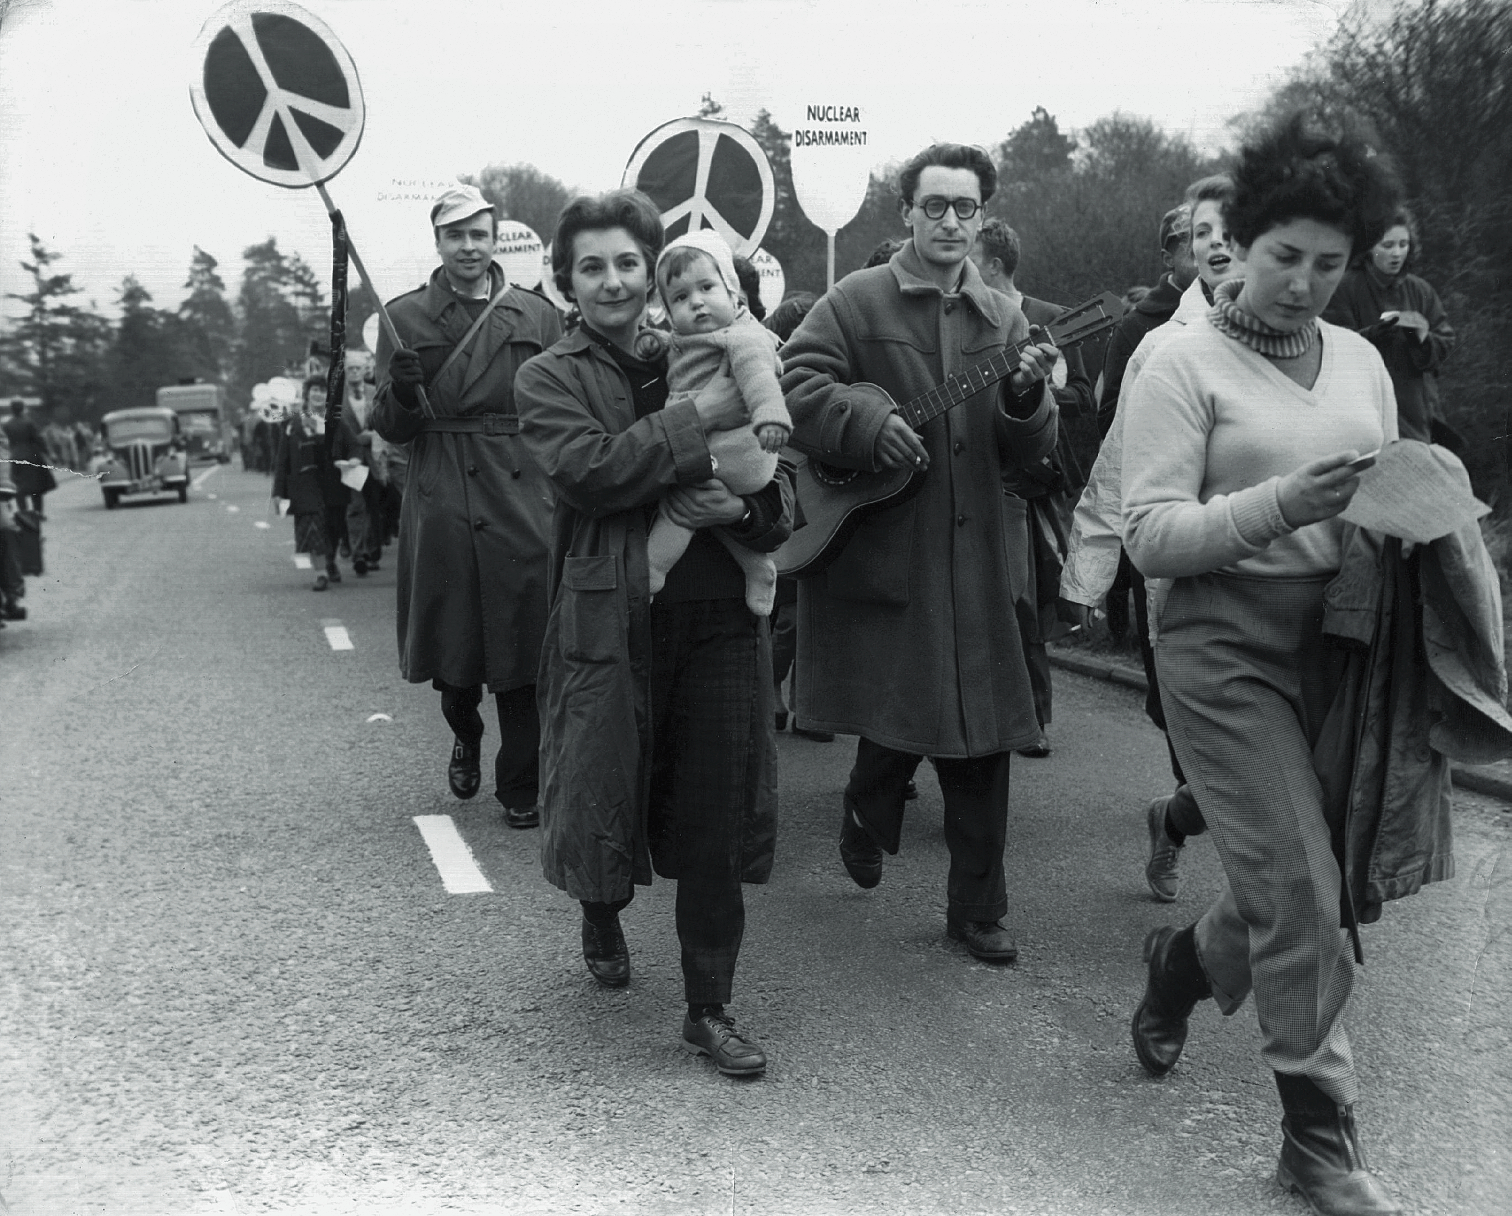 Peace March in Doris Lessing's The Four-Gated City ...March For Peace